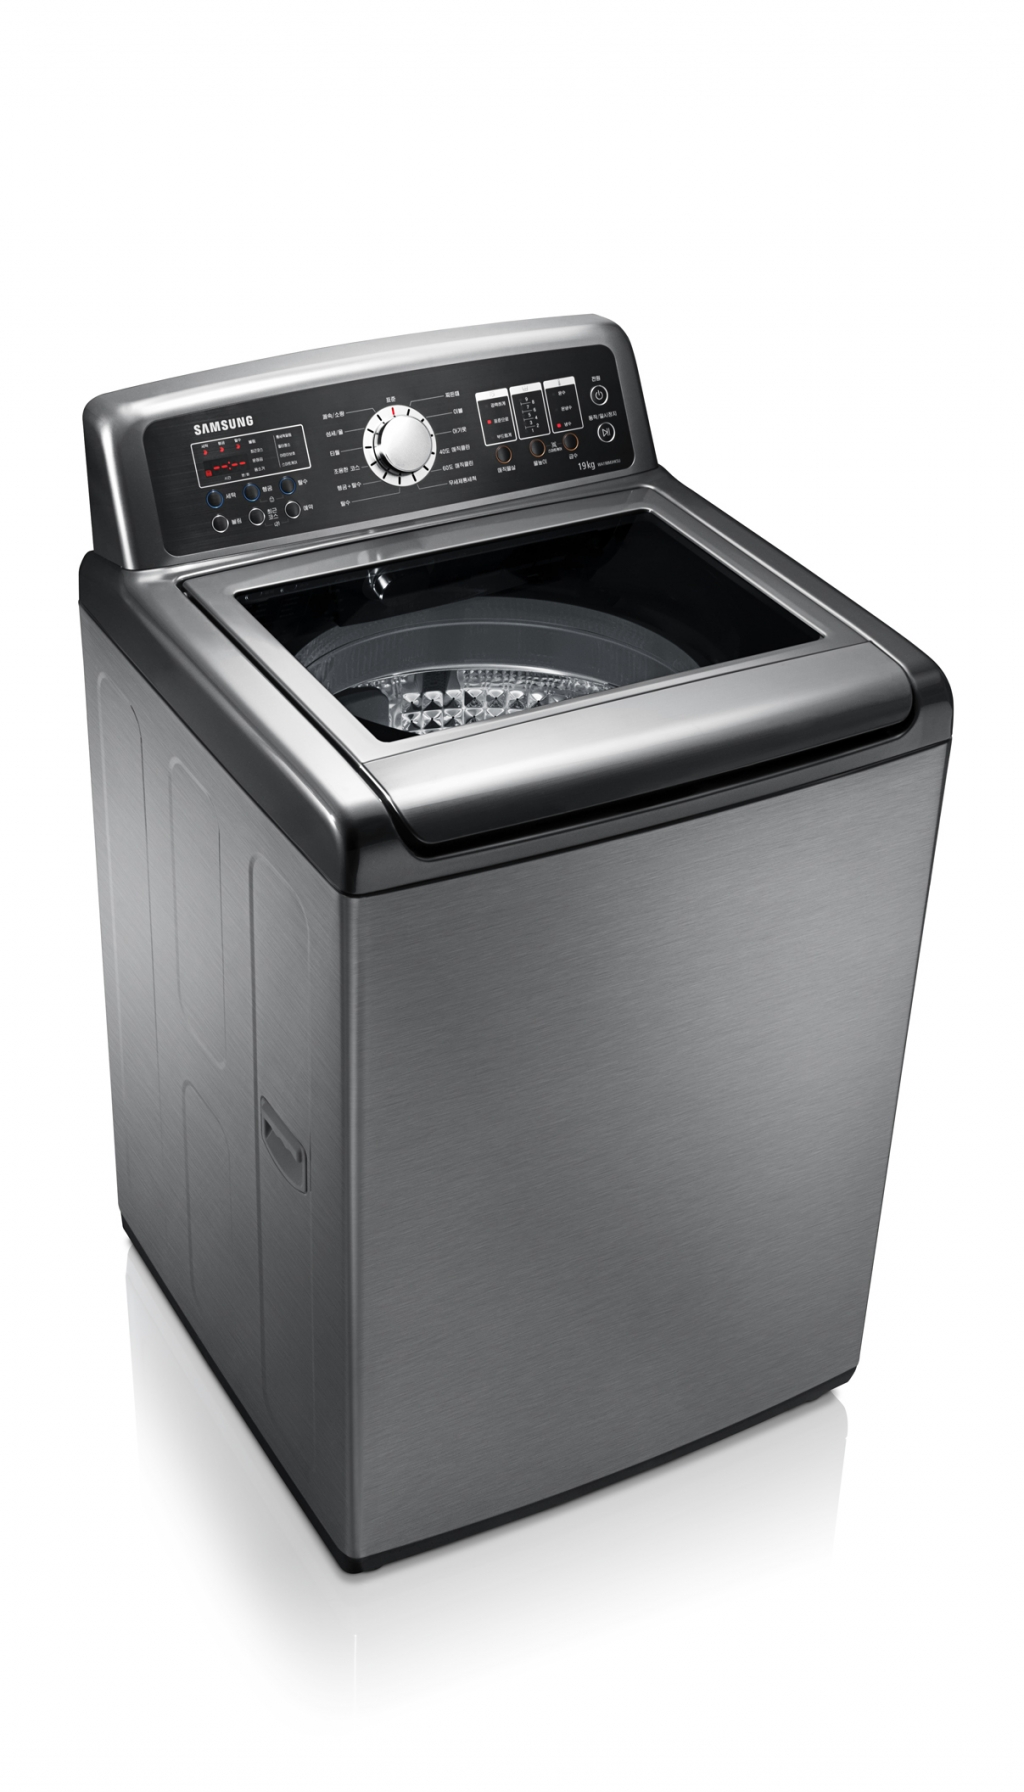 Samsung to Release Large Capacity Fully Automatic Washing Machine